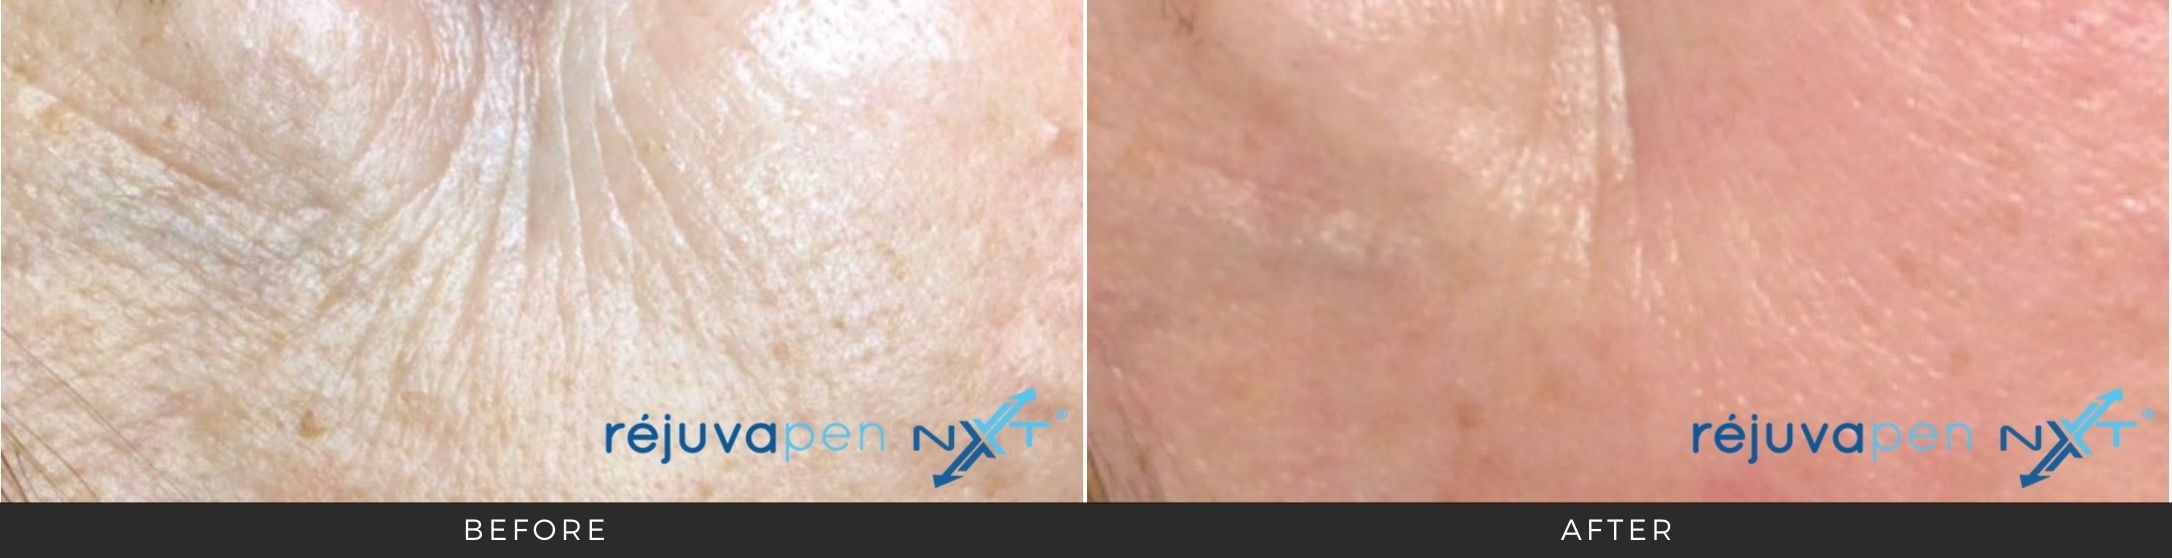 woman's face before and after Rejuvapen treatment in Martinsburg